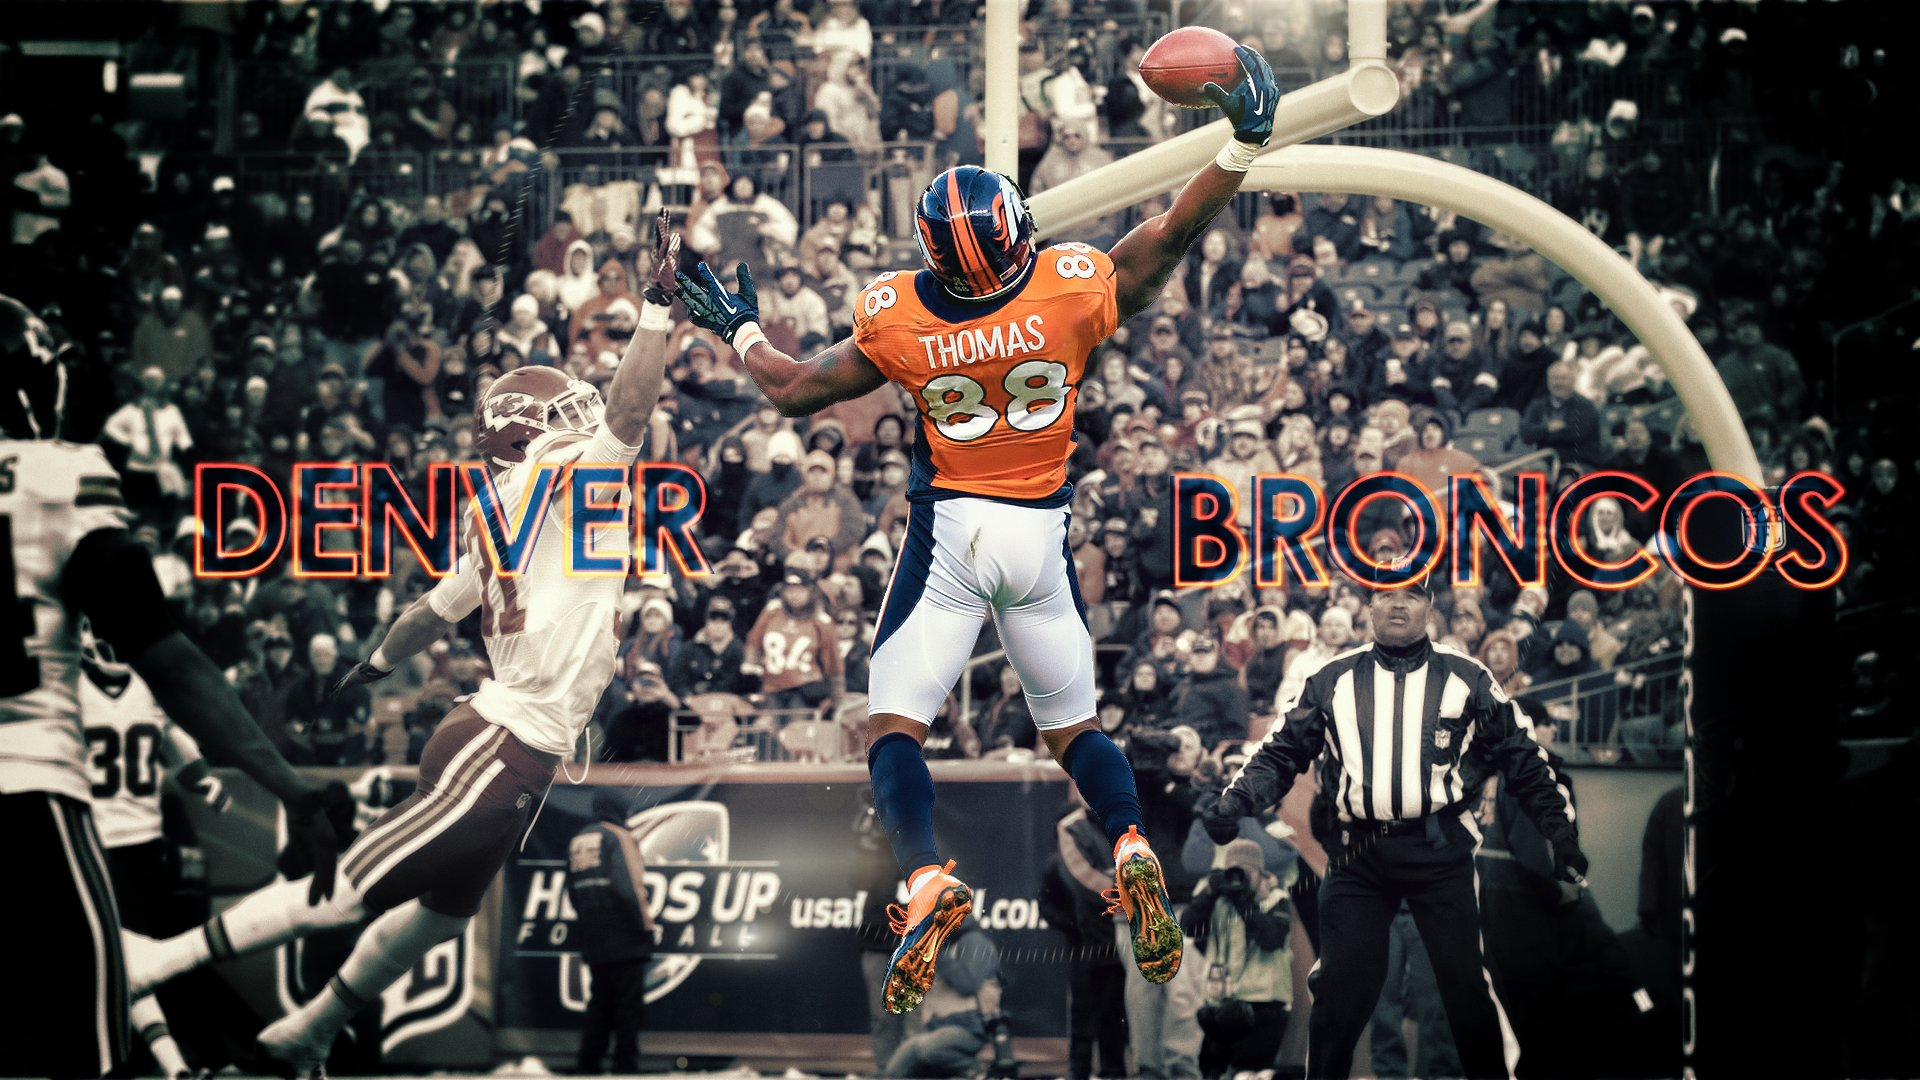 Denver Broncos Wallpaper 1920x1080